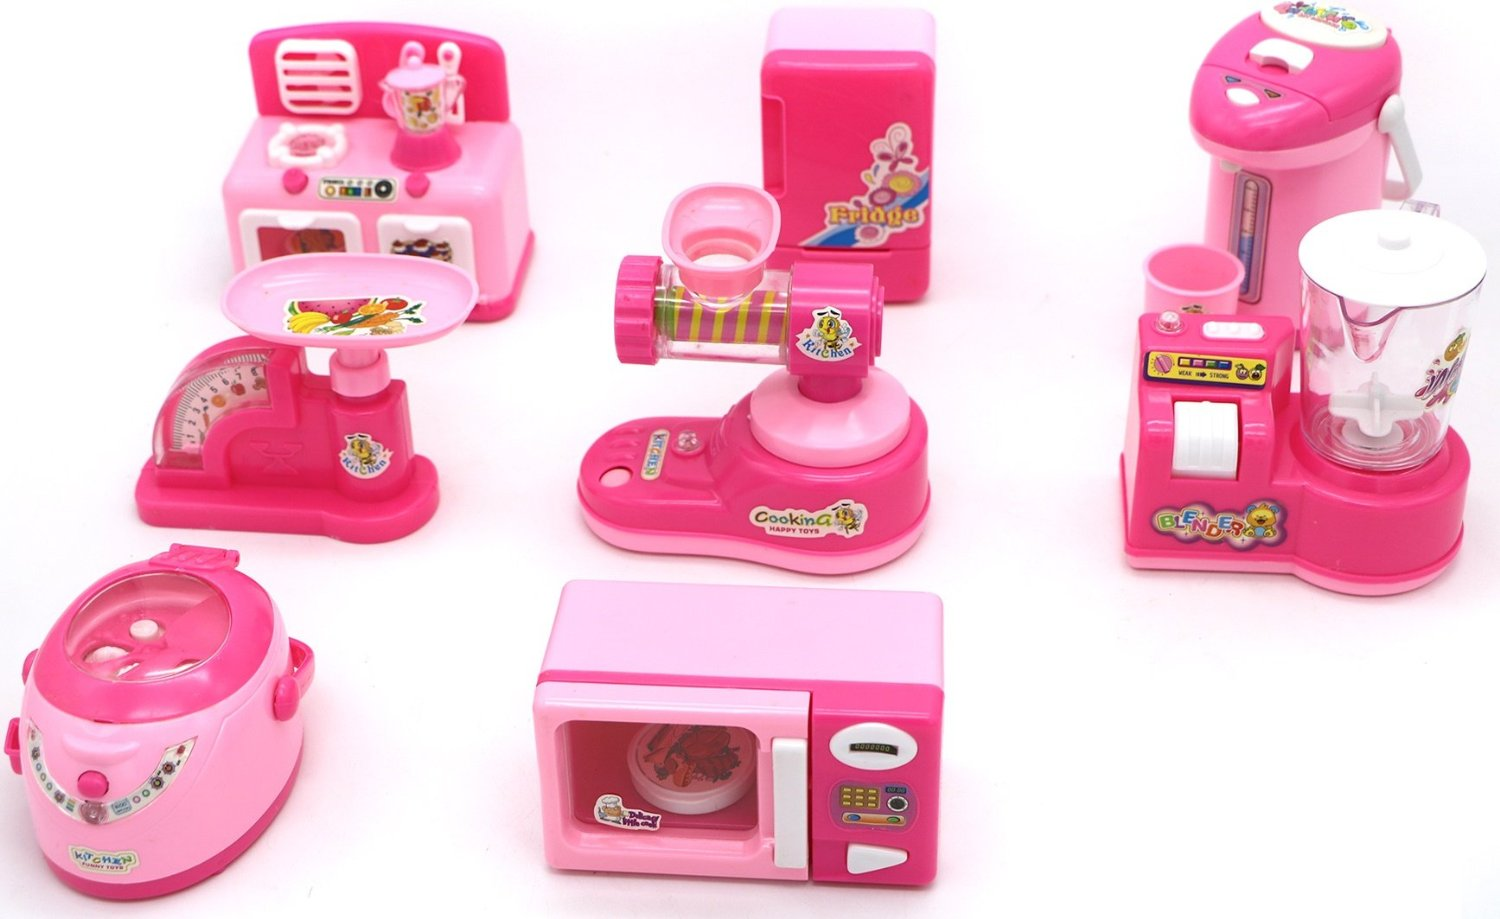 Kids Kitchen Set with realistic action and battery operated series of kitchen appliances for children 3+ designed for girls including mini blender, oven, fridge, dispenser, mincer, juicer, and cooker